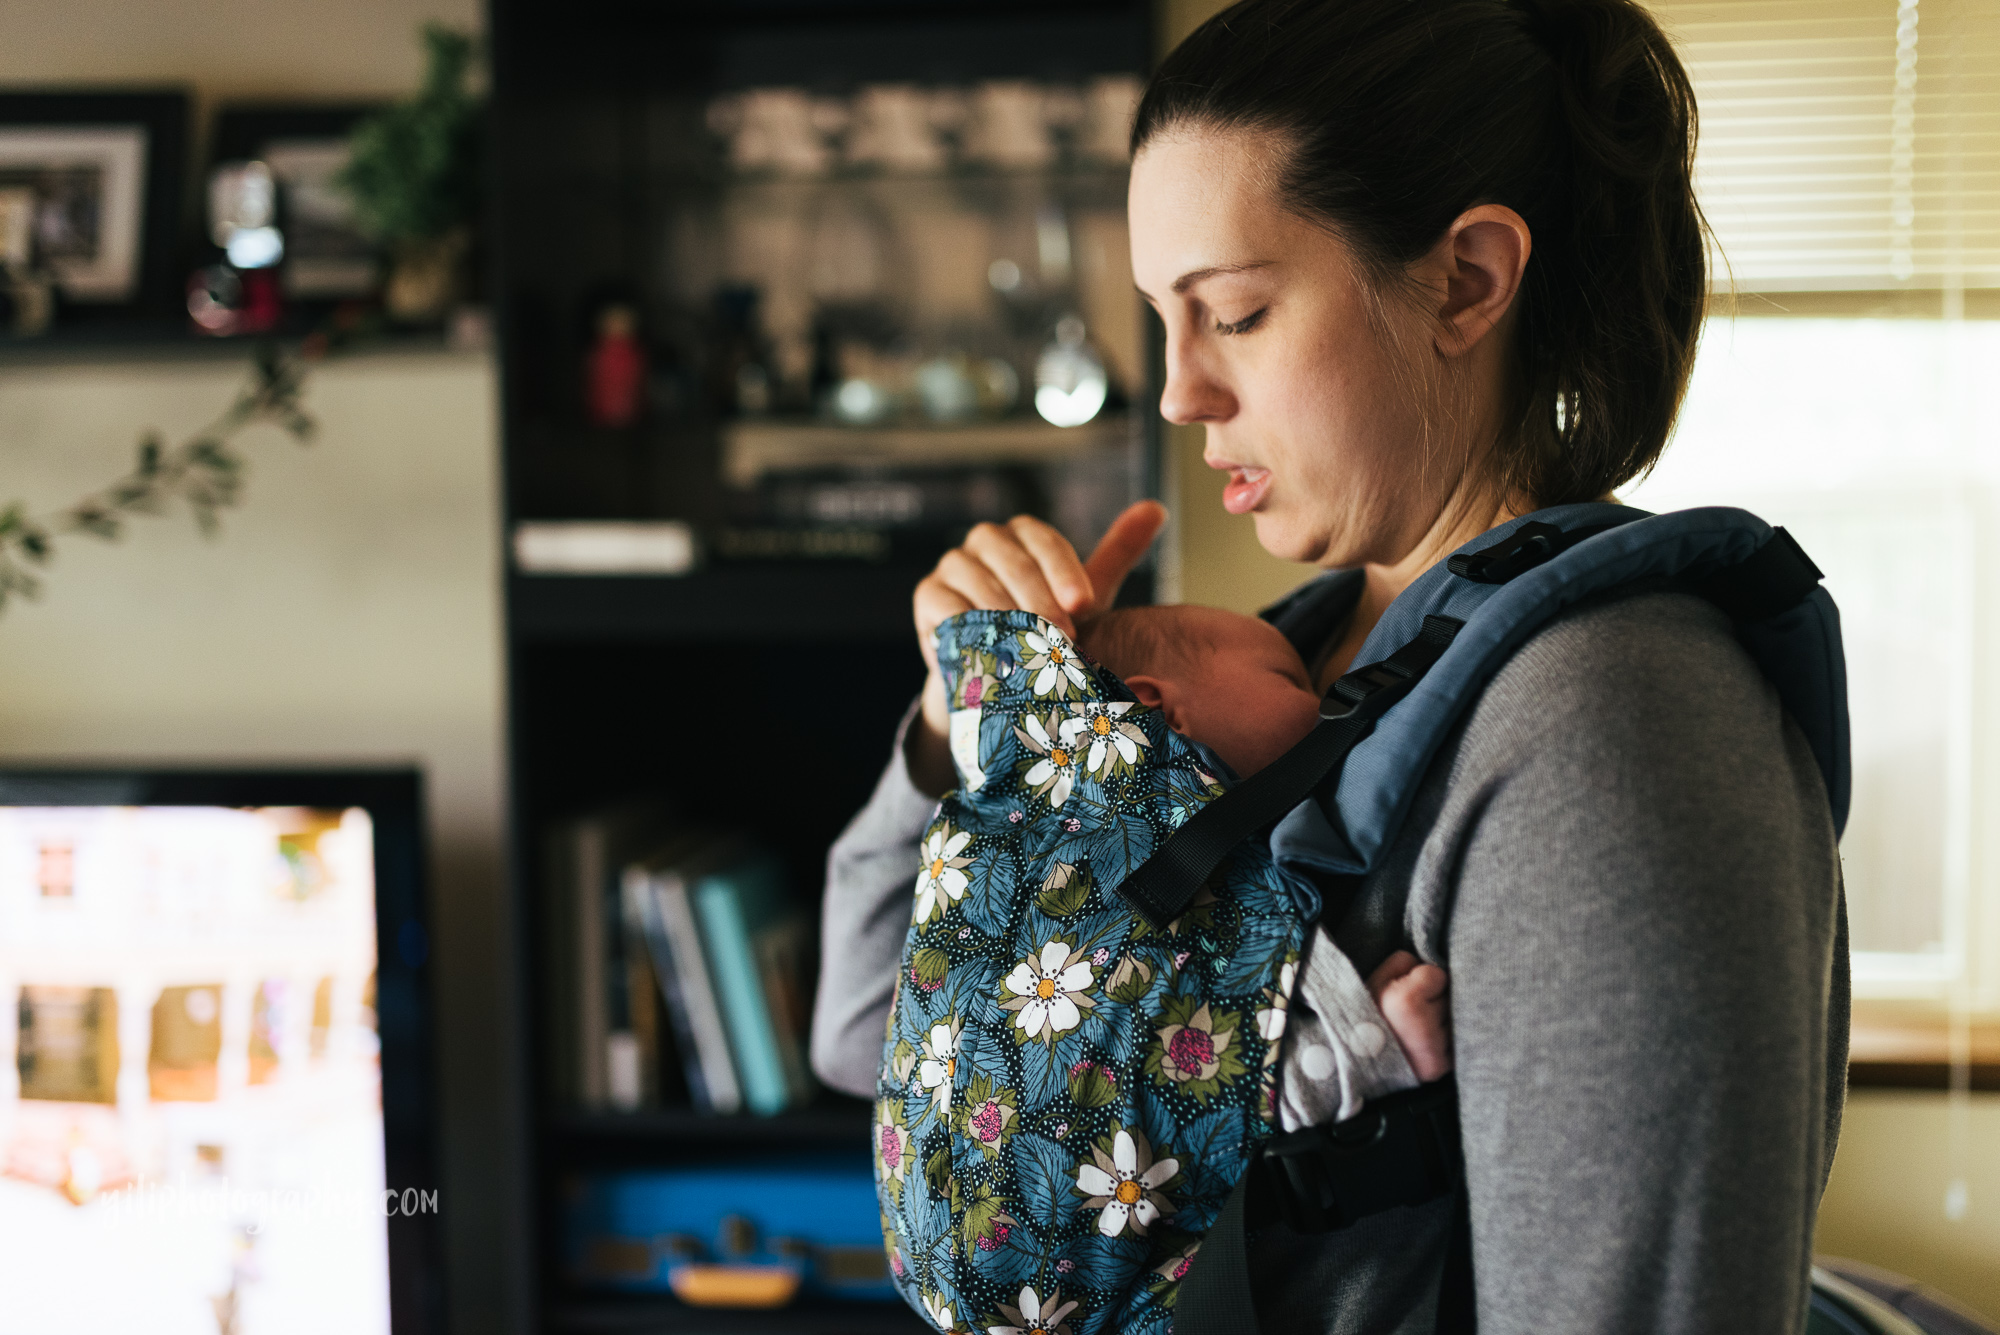 seattle mom adjusting newborn baby in baby carrier